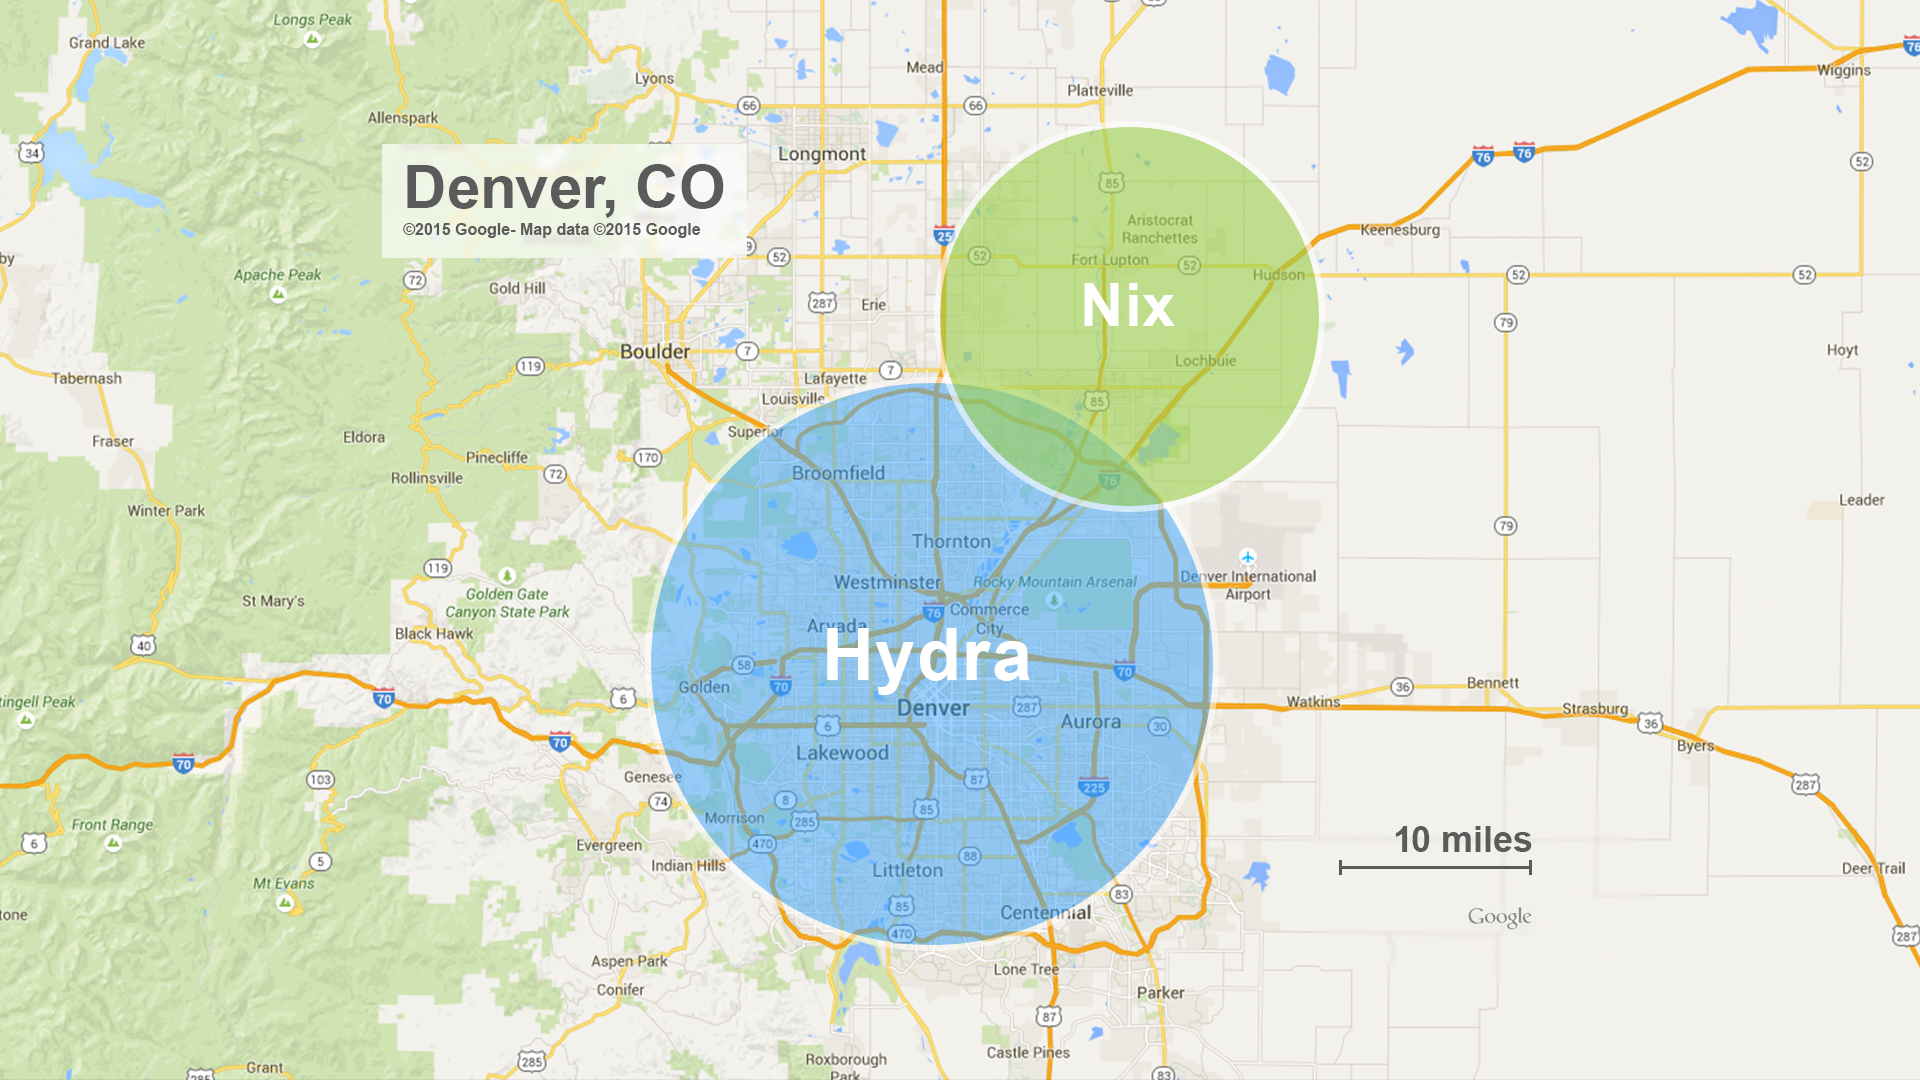 The approximate sizes of Pluto's moons Nix and Hydra compared to Denver, Colorado.